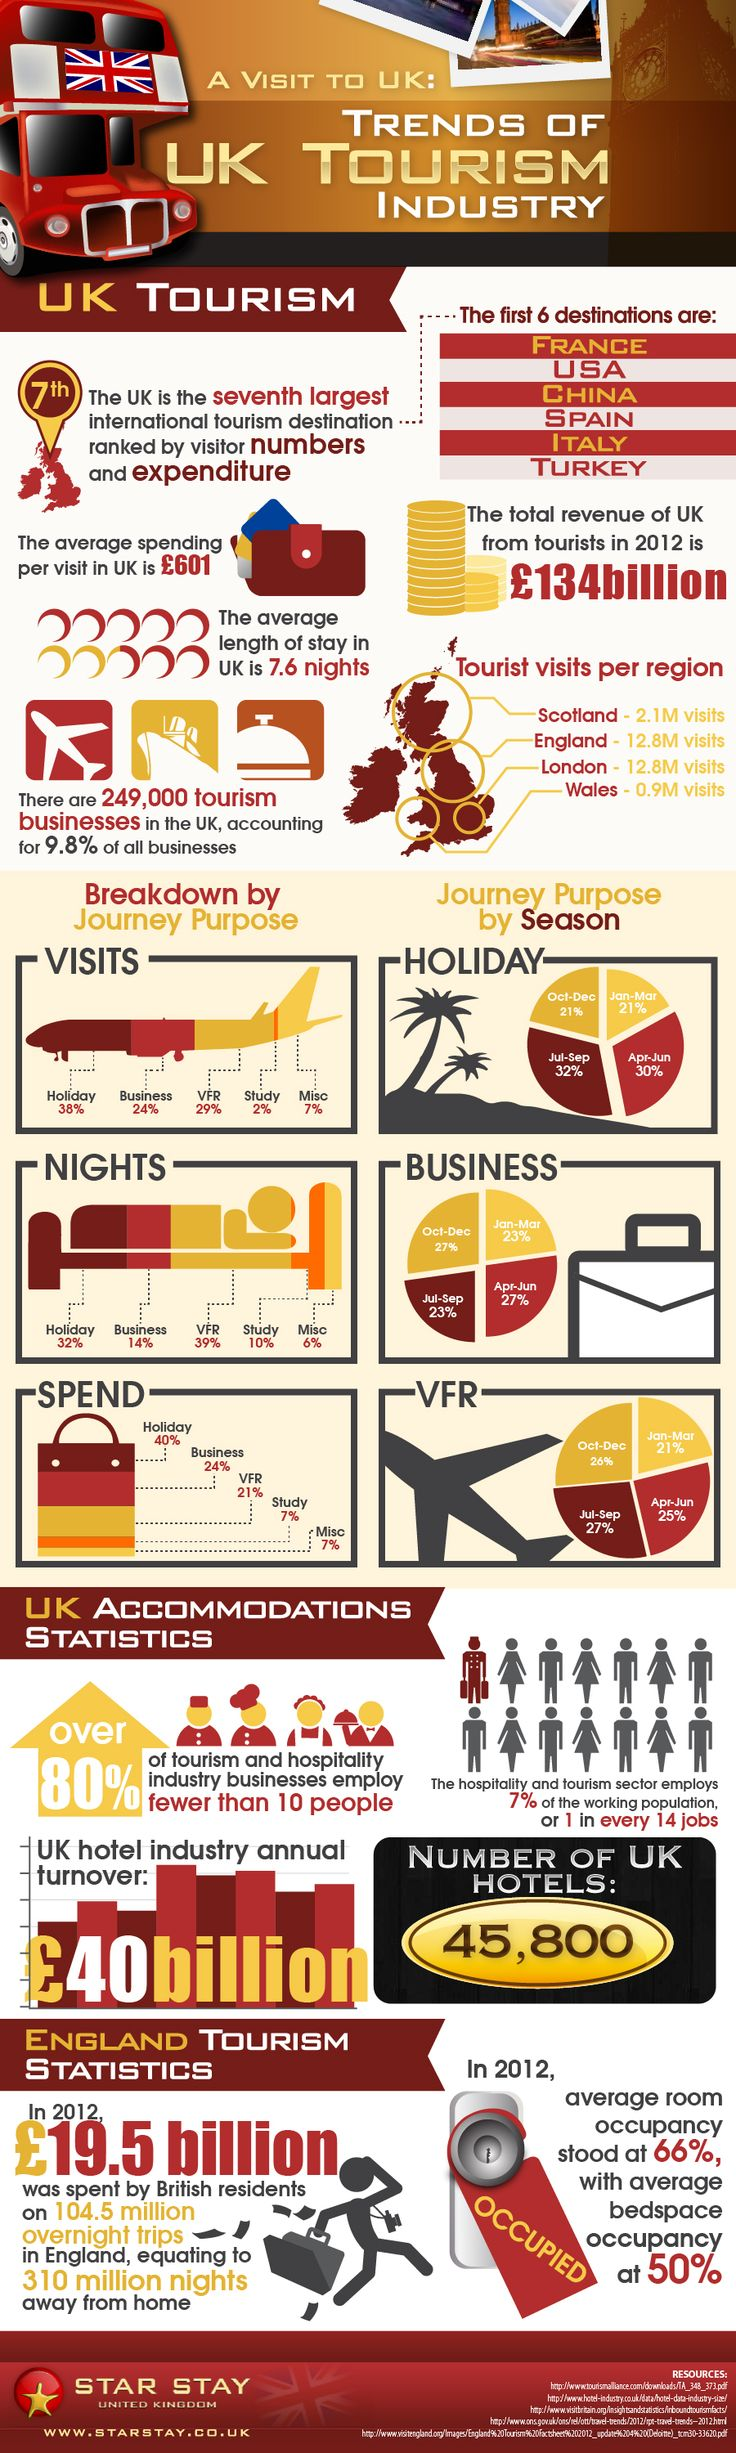 A Visit to UK: Trend of UK Tourism Industry   #Infographic #UK #Tourism #Travel